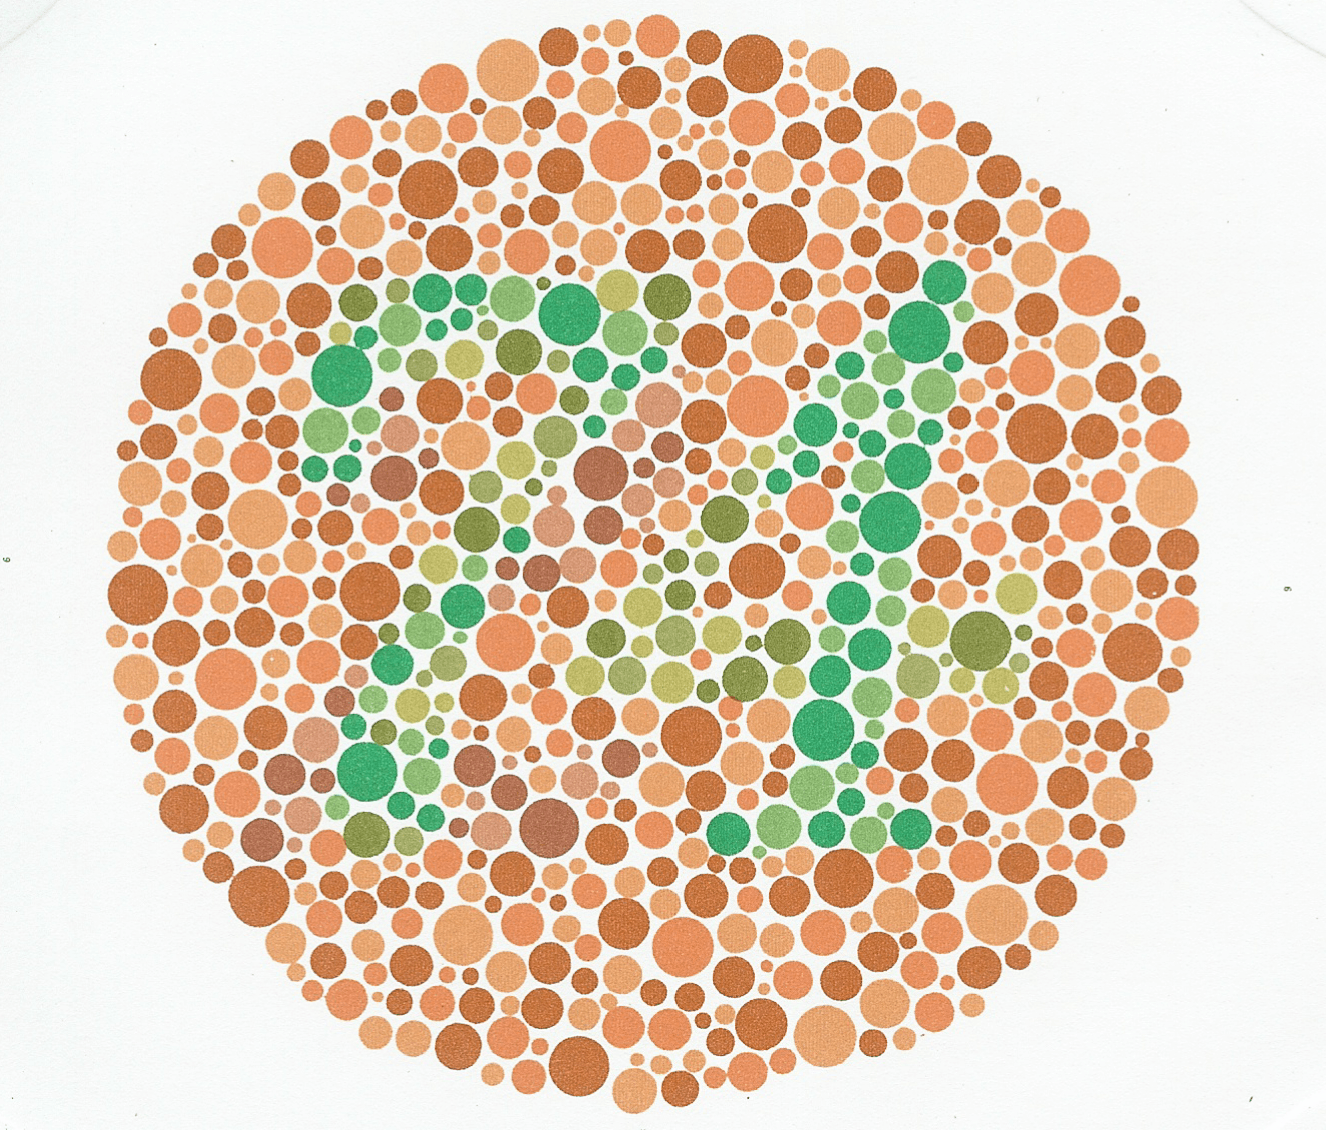 Book for color blindness - Kanehara Ishihara Colour Blindness Test Book